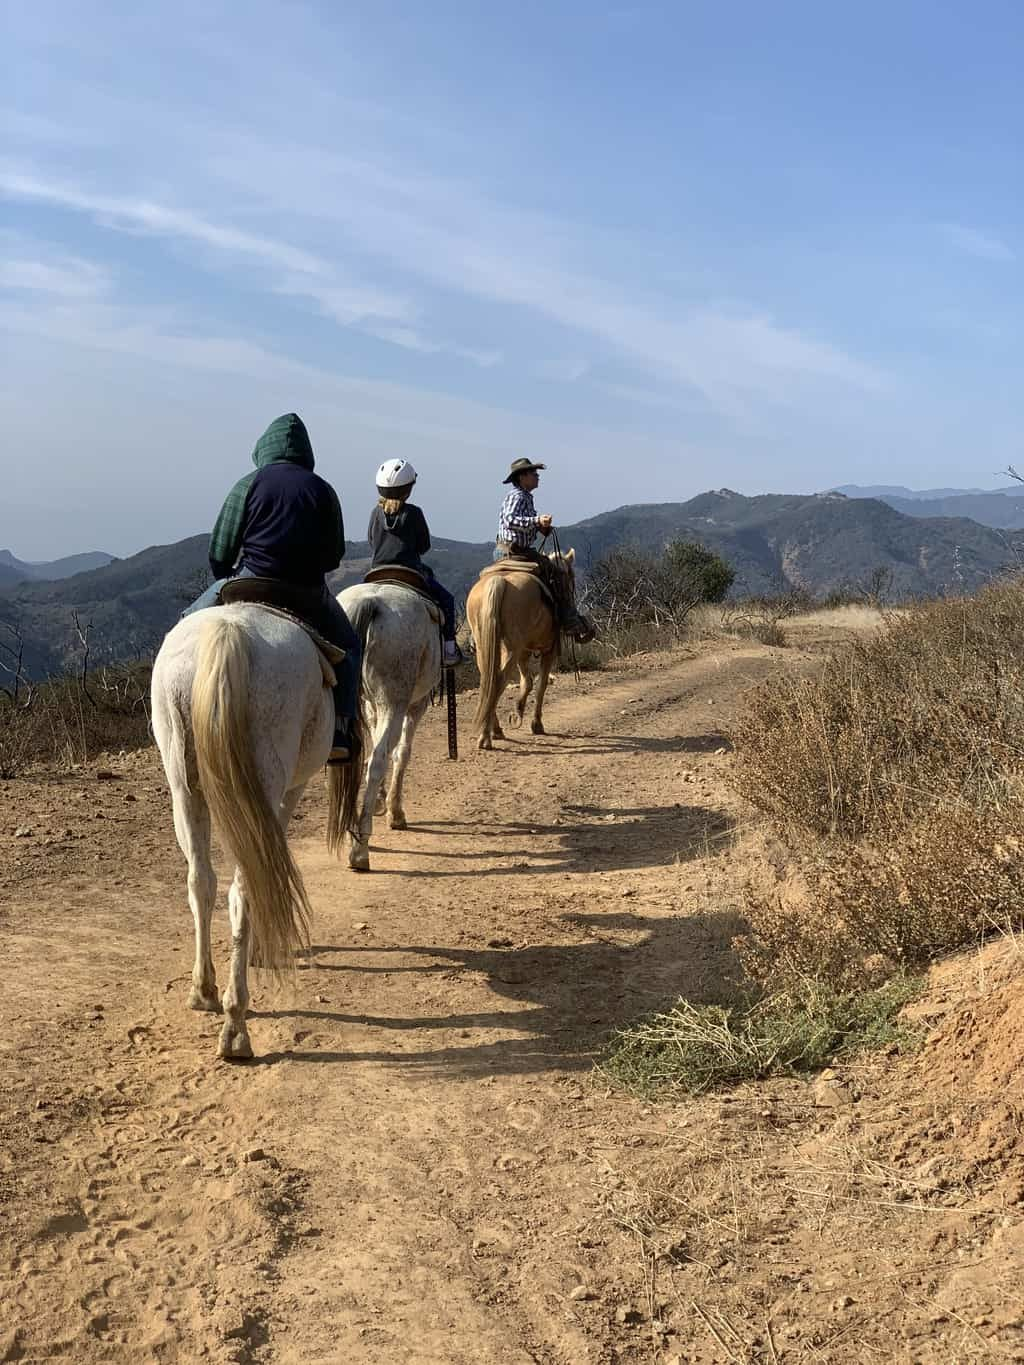 Circle Bar B Resort in Santa Barbara offers guests the opportunity to go horseback riding, relax by the pool or take a scenic hike on one of the many private trails around the 1,000 acres property.